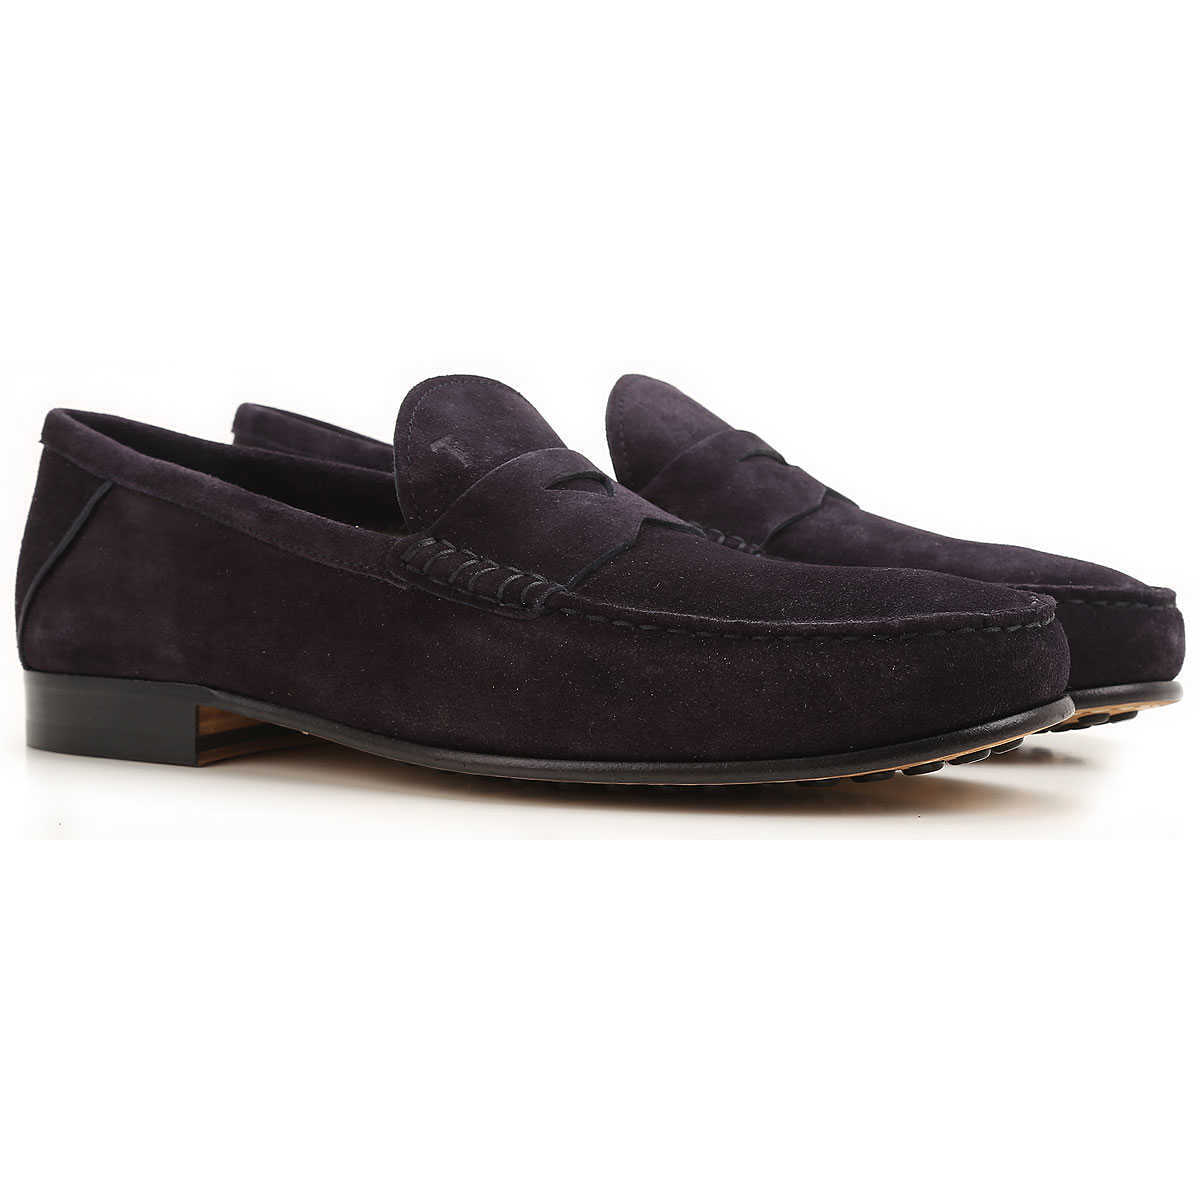 Tods Loafers for Men Dark Galaxy blue DK - GOOFASH - Mens LOAFERS